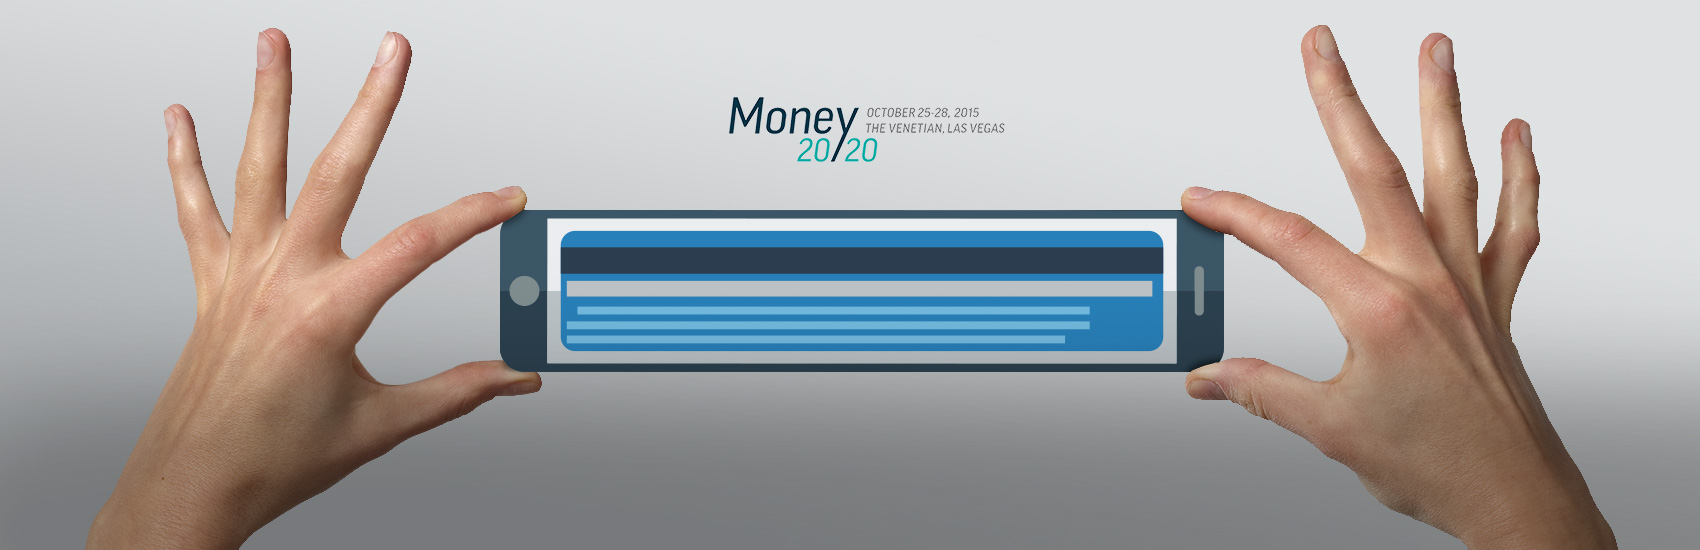 miura-systems-money-2020-spreading-the-word-about-flexible-card-payments